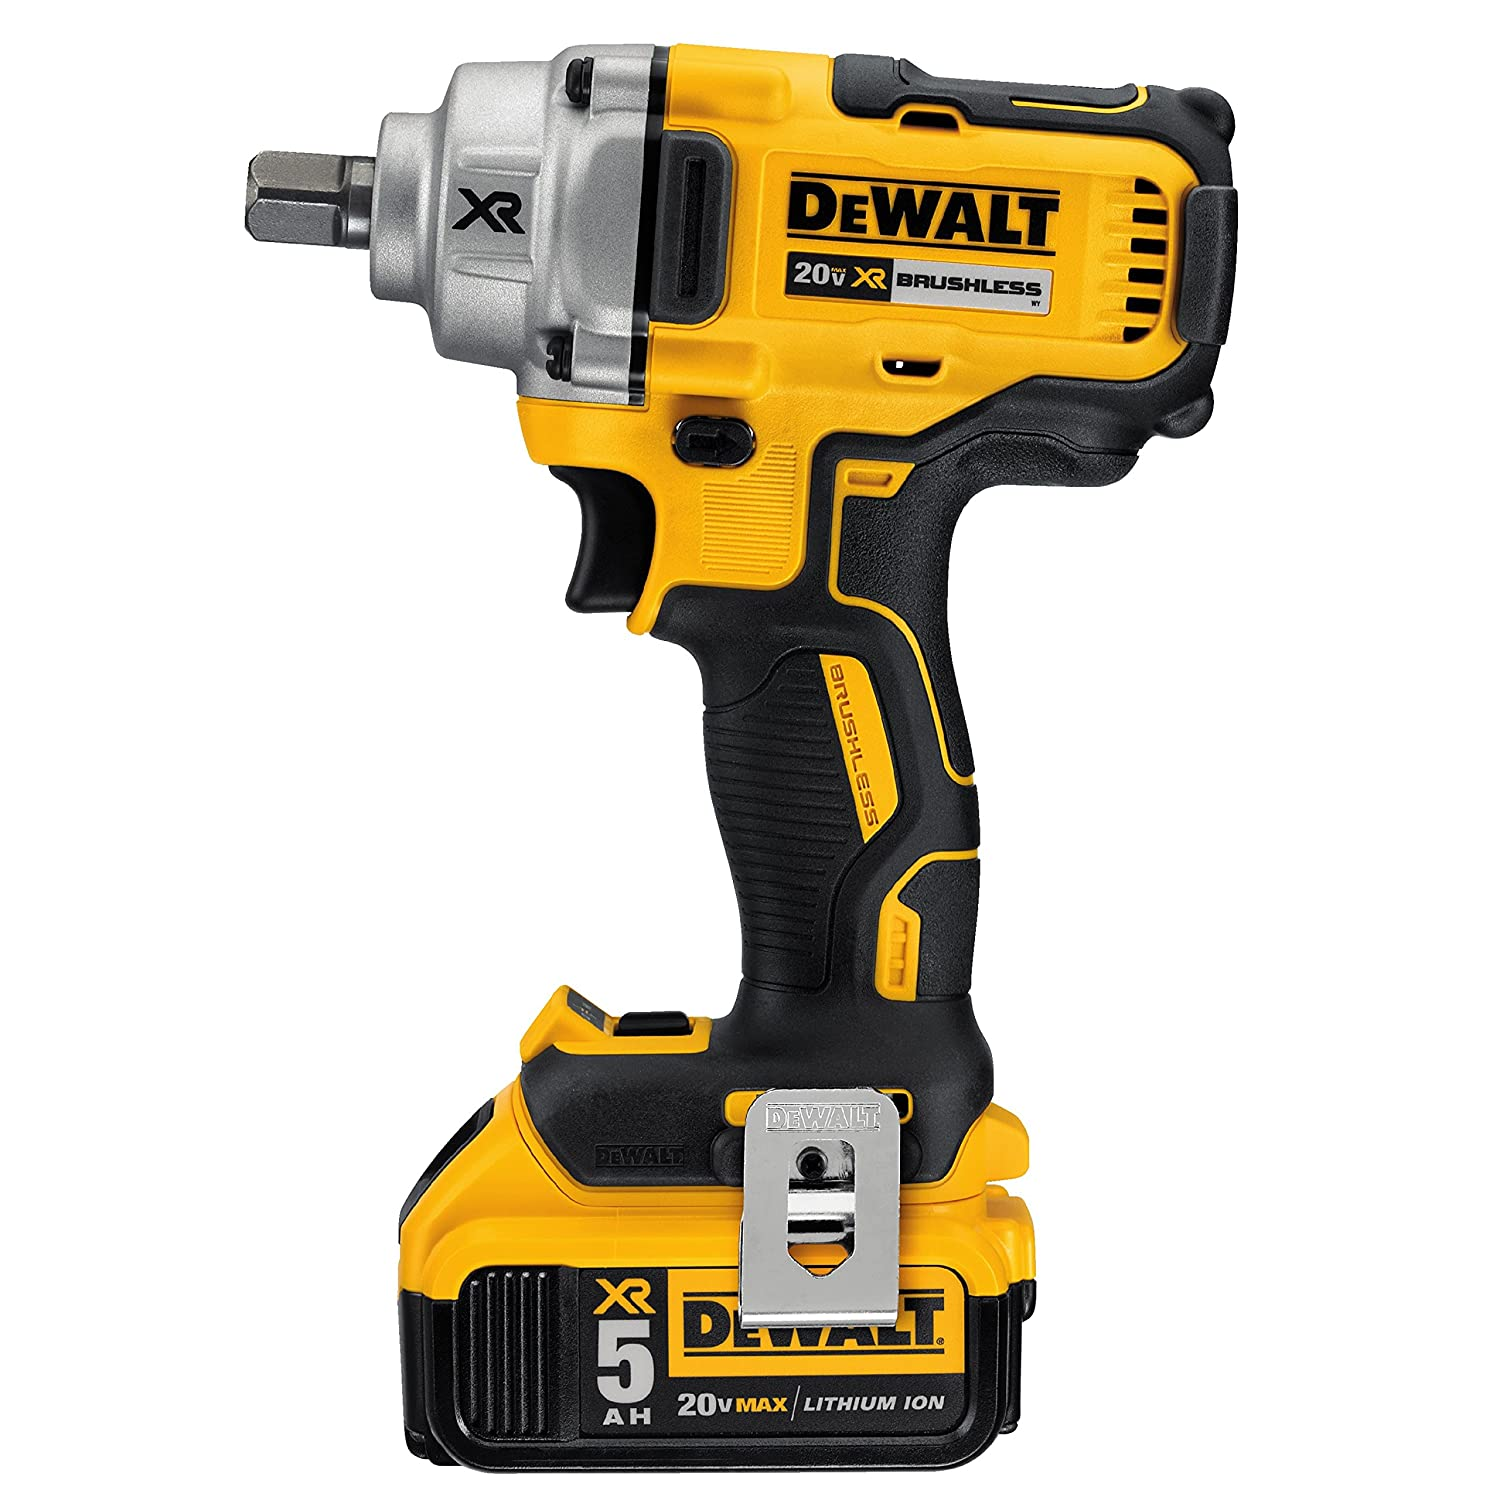 DEWALT DCF894P2 20V Max Xr 1 2 Mid Range Cordless Impact Wrench with Detent Pin Anvil Kit